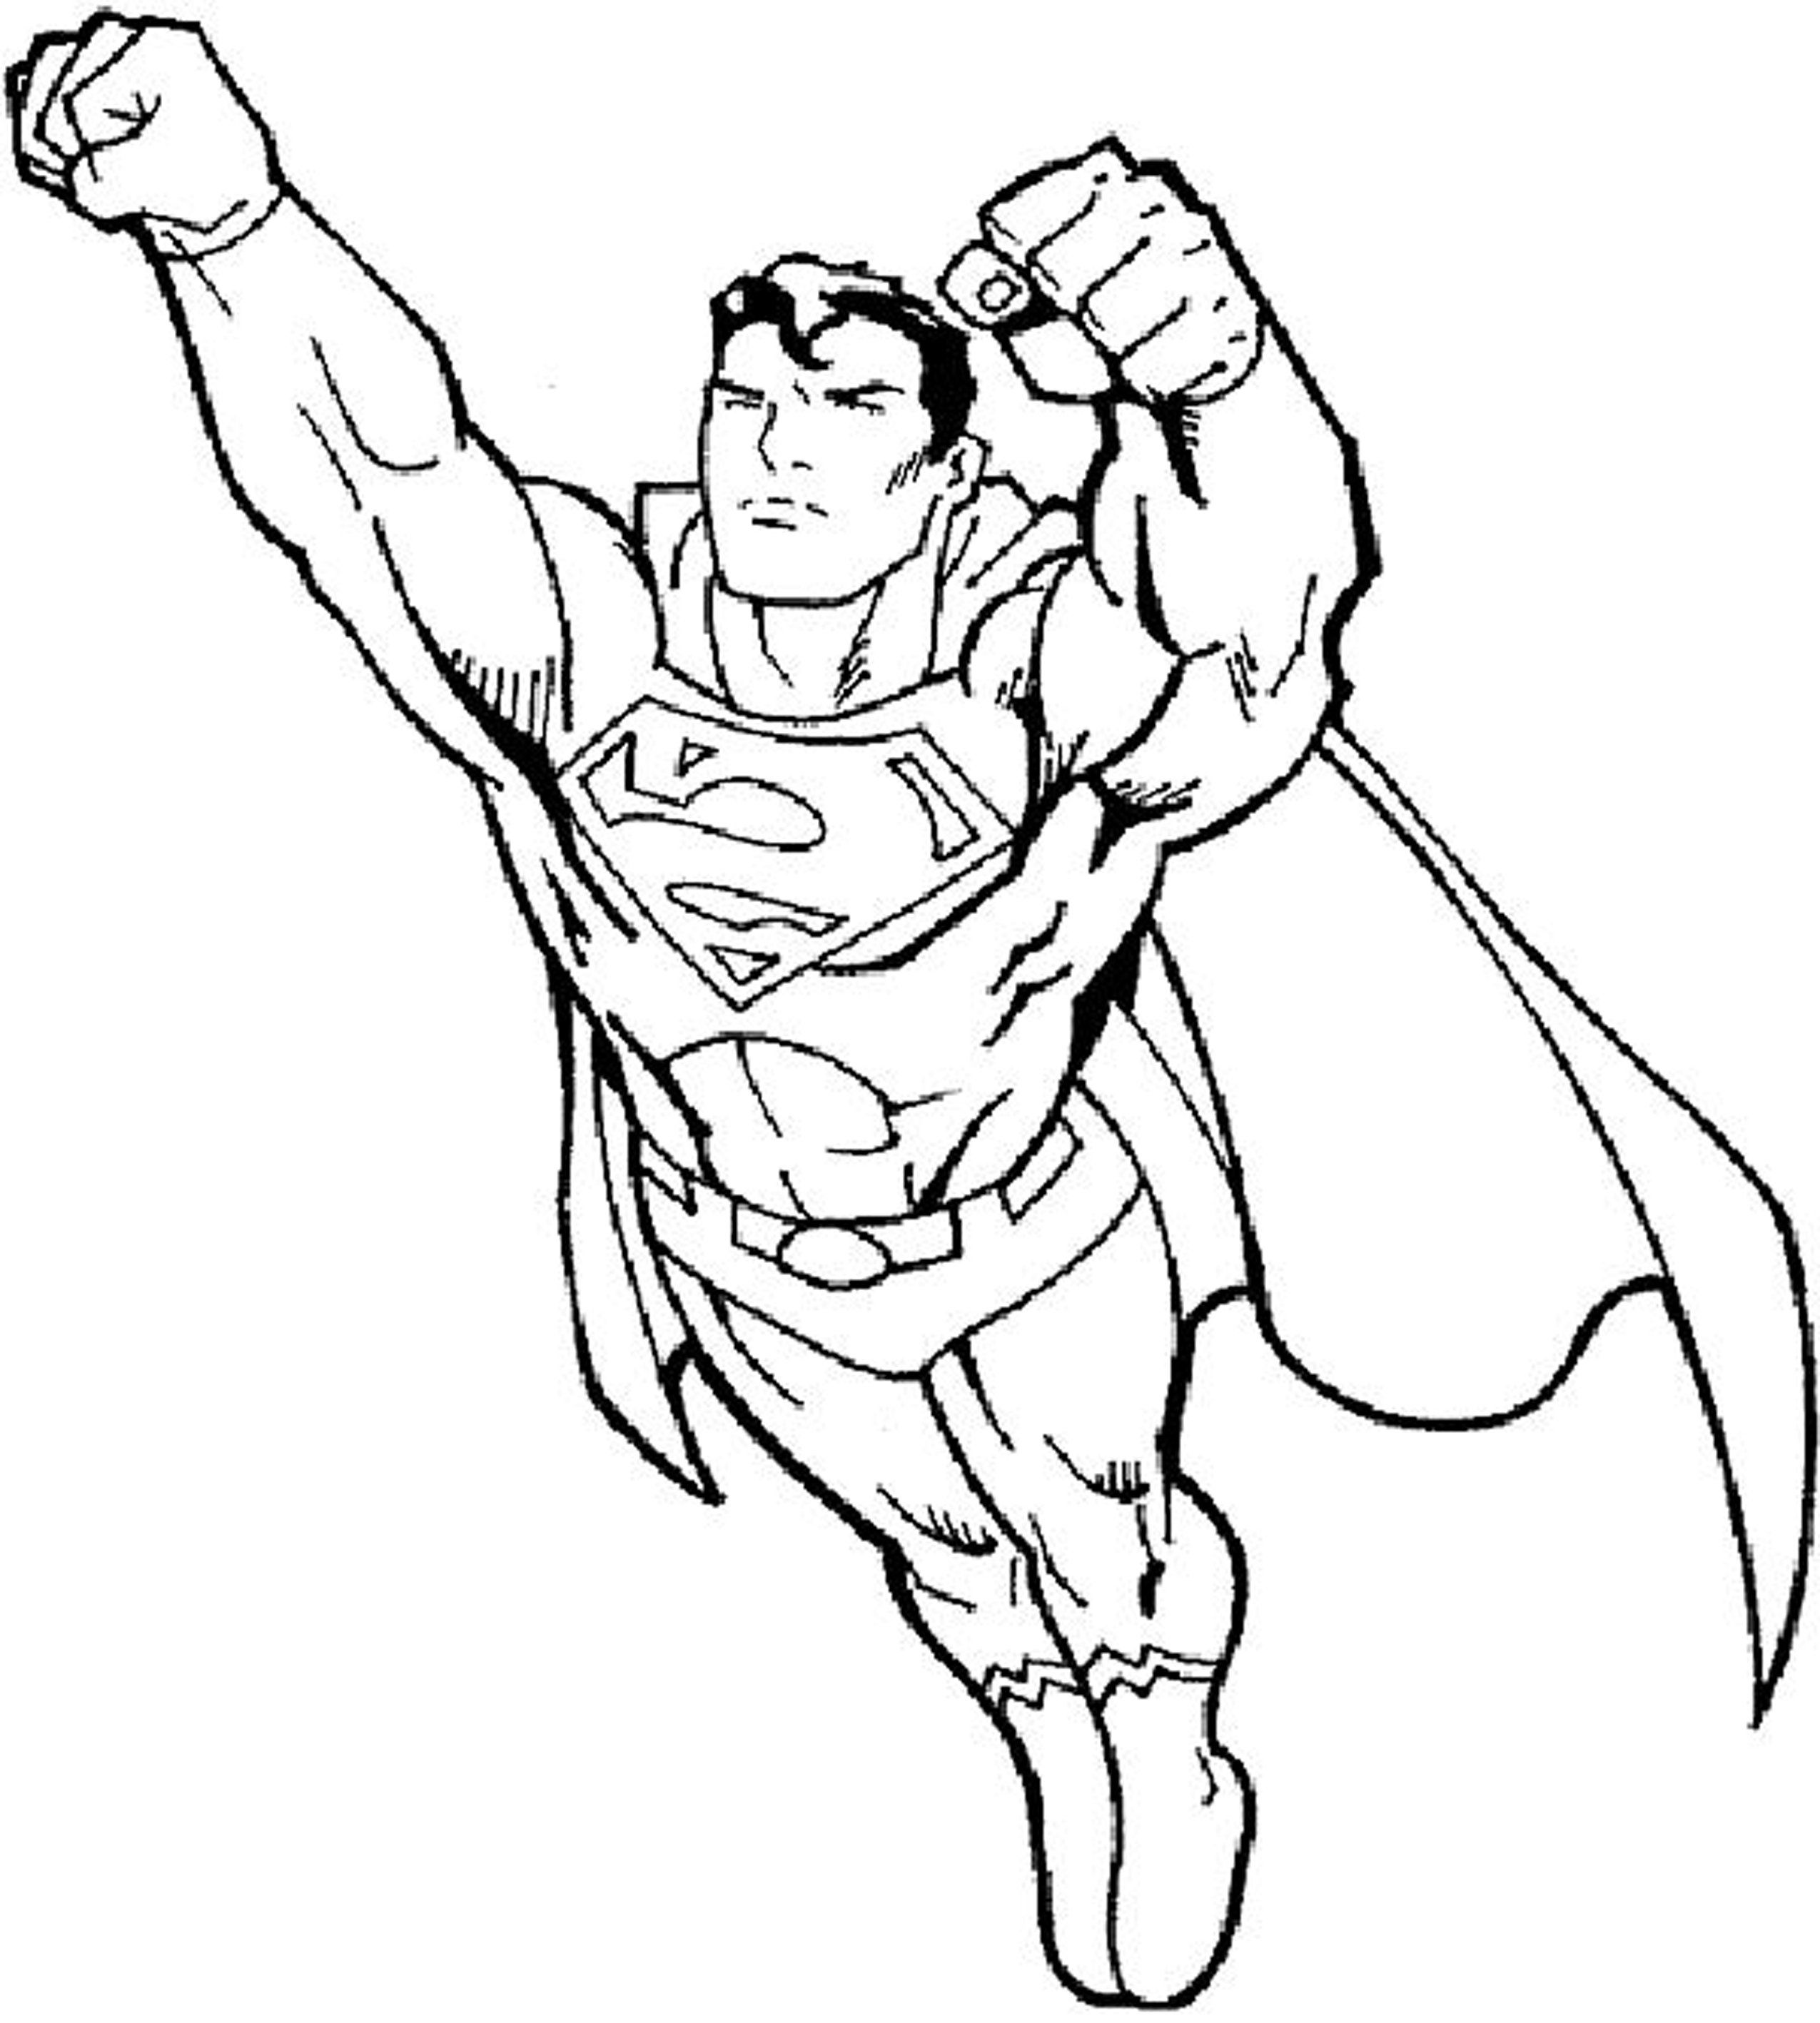 - Free-coloring-pages-for-boys-superman (With Images) Batman